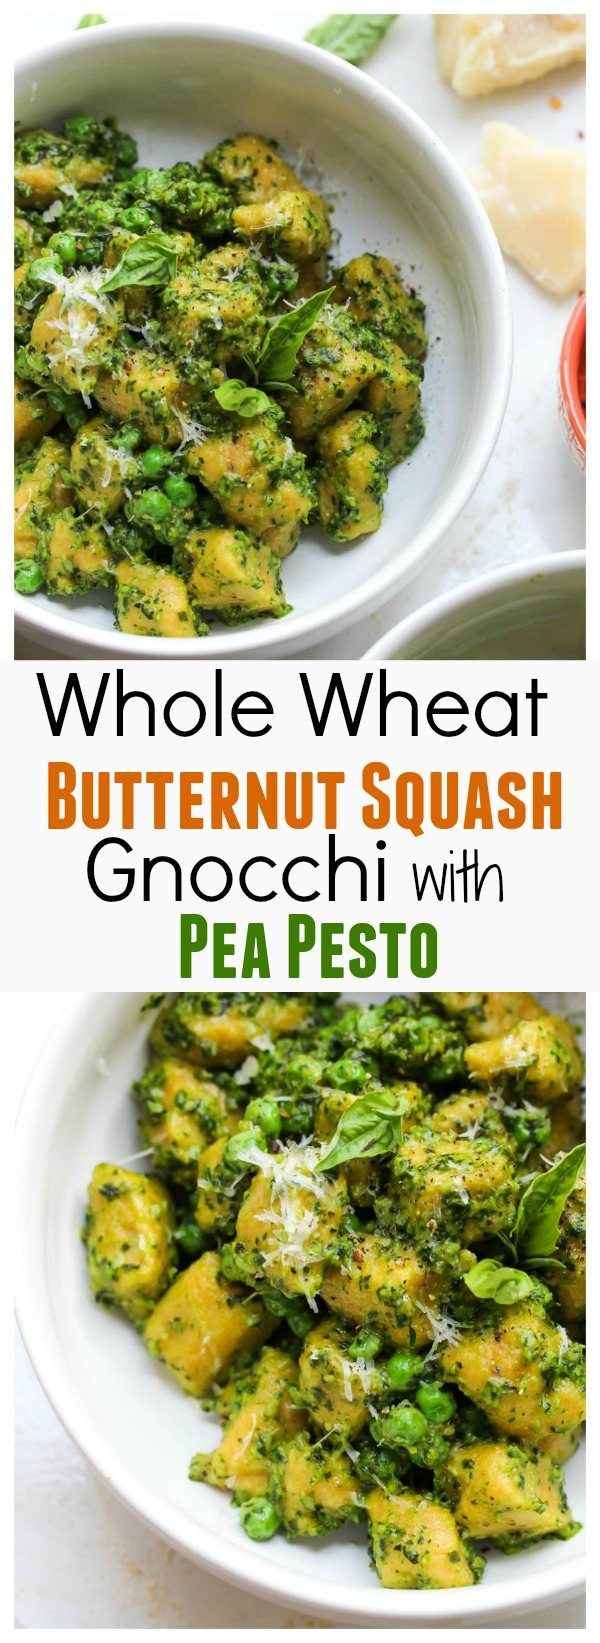 Healthy, Whole Wheat Butternut Squash Gnocchi with Pea Pesto | dishingouthealth.com